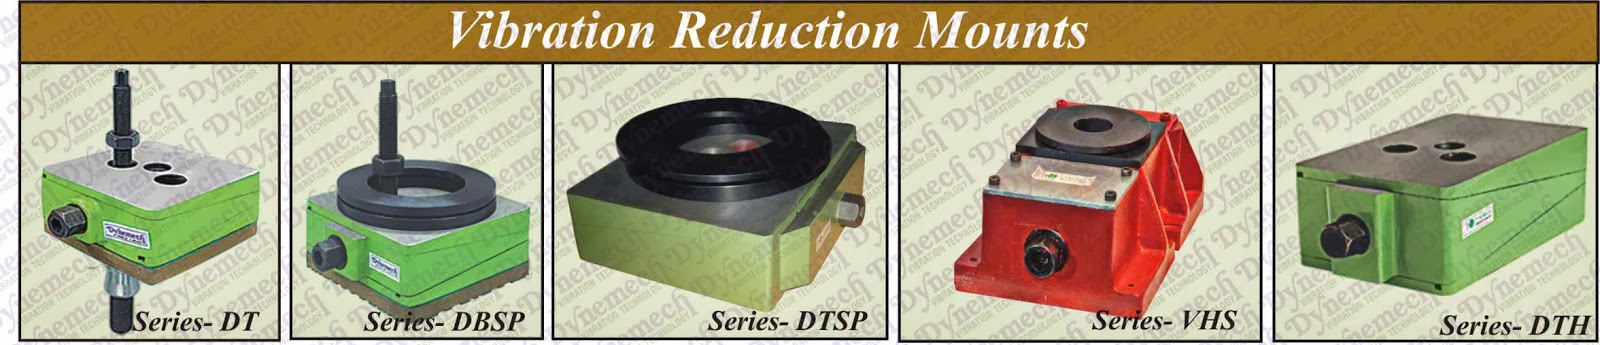 Dynemech Systems Vibration Control October 2013